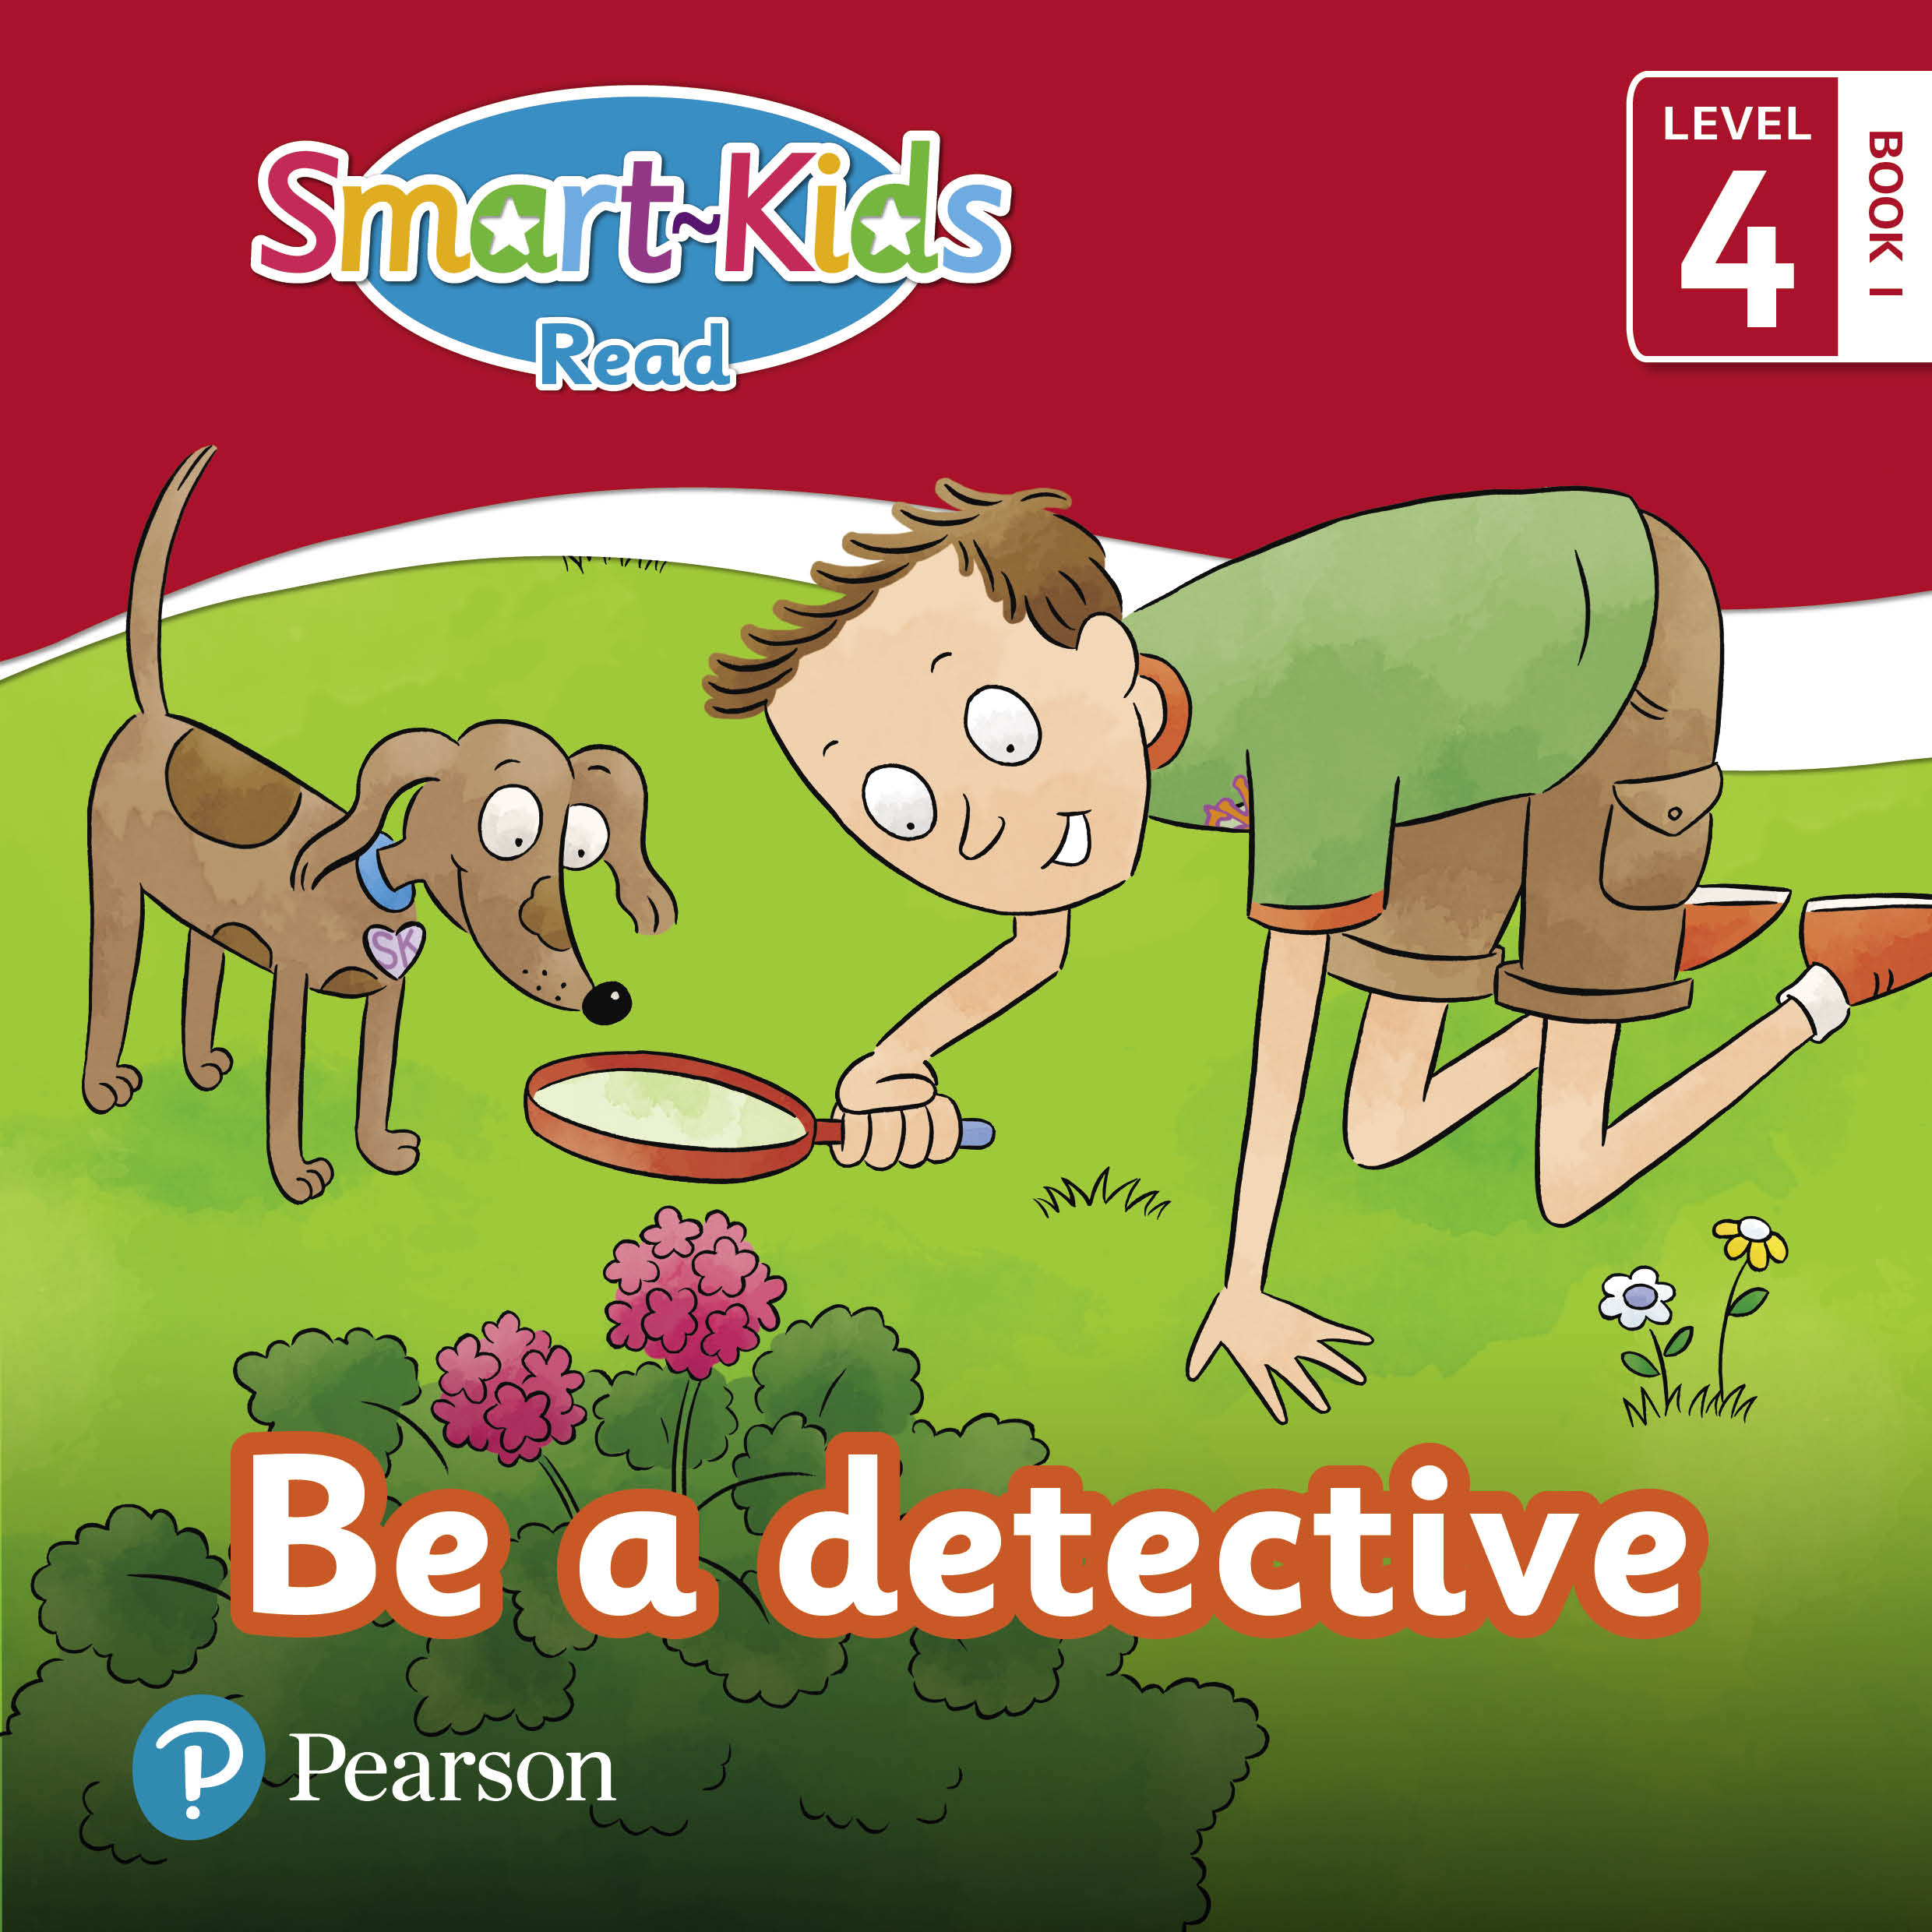 Smart-Kids Read: Be a detective: Grade R, Grade 1, Grade 2